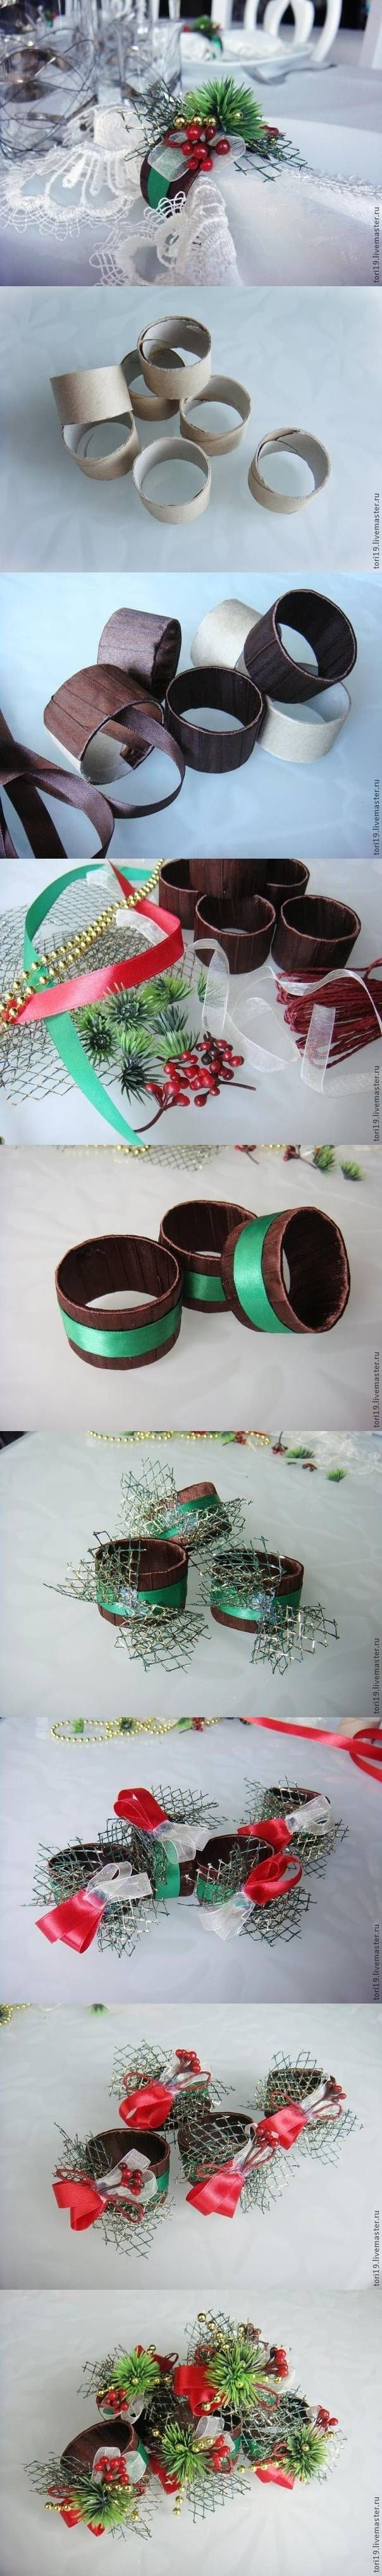 195 best napkin rings and napkin folding for all occasions images on how to make toilet paper napkin rings diy christmas diy crafts do it yourself diy projects solutioingenieria Images